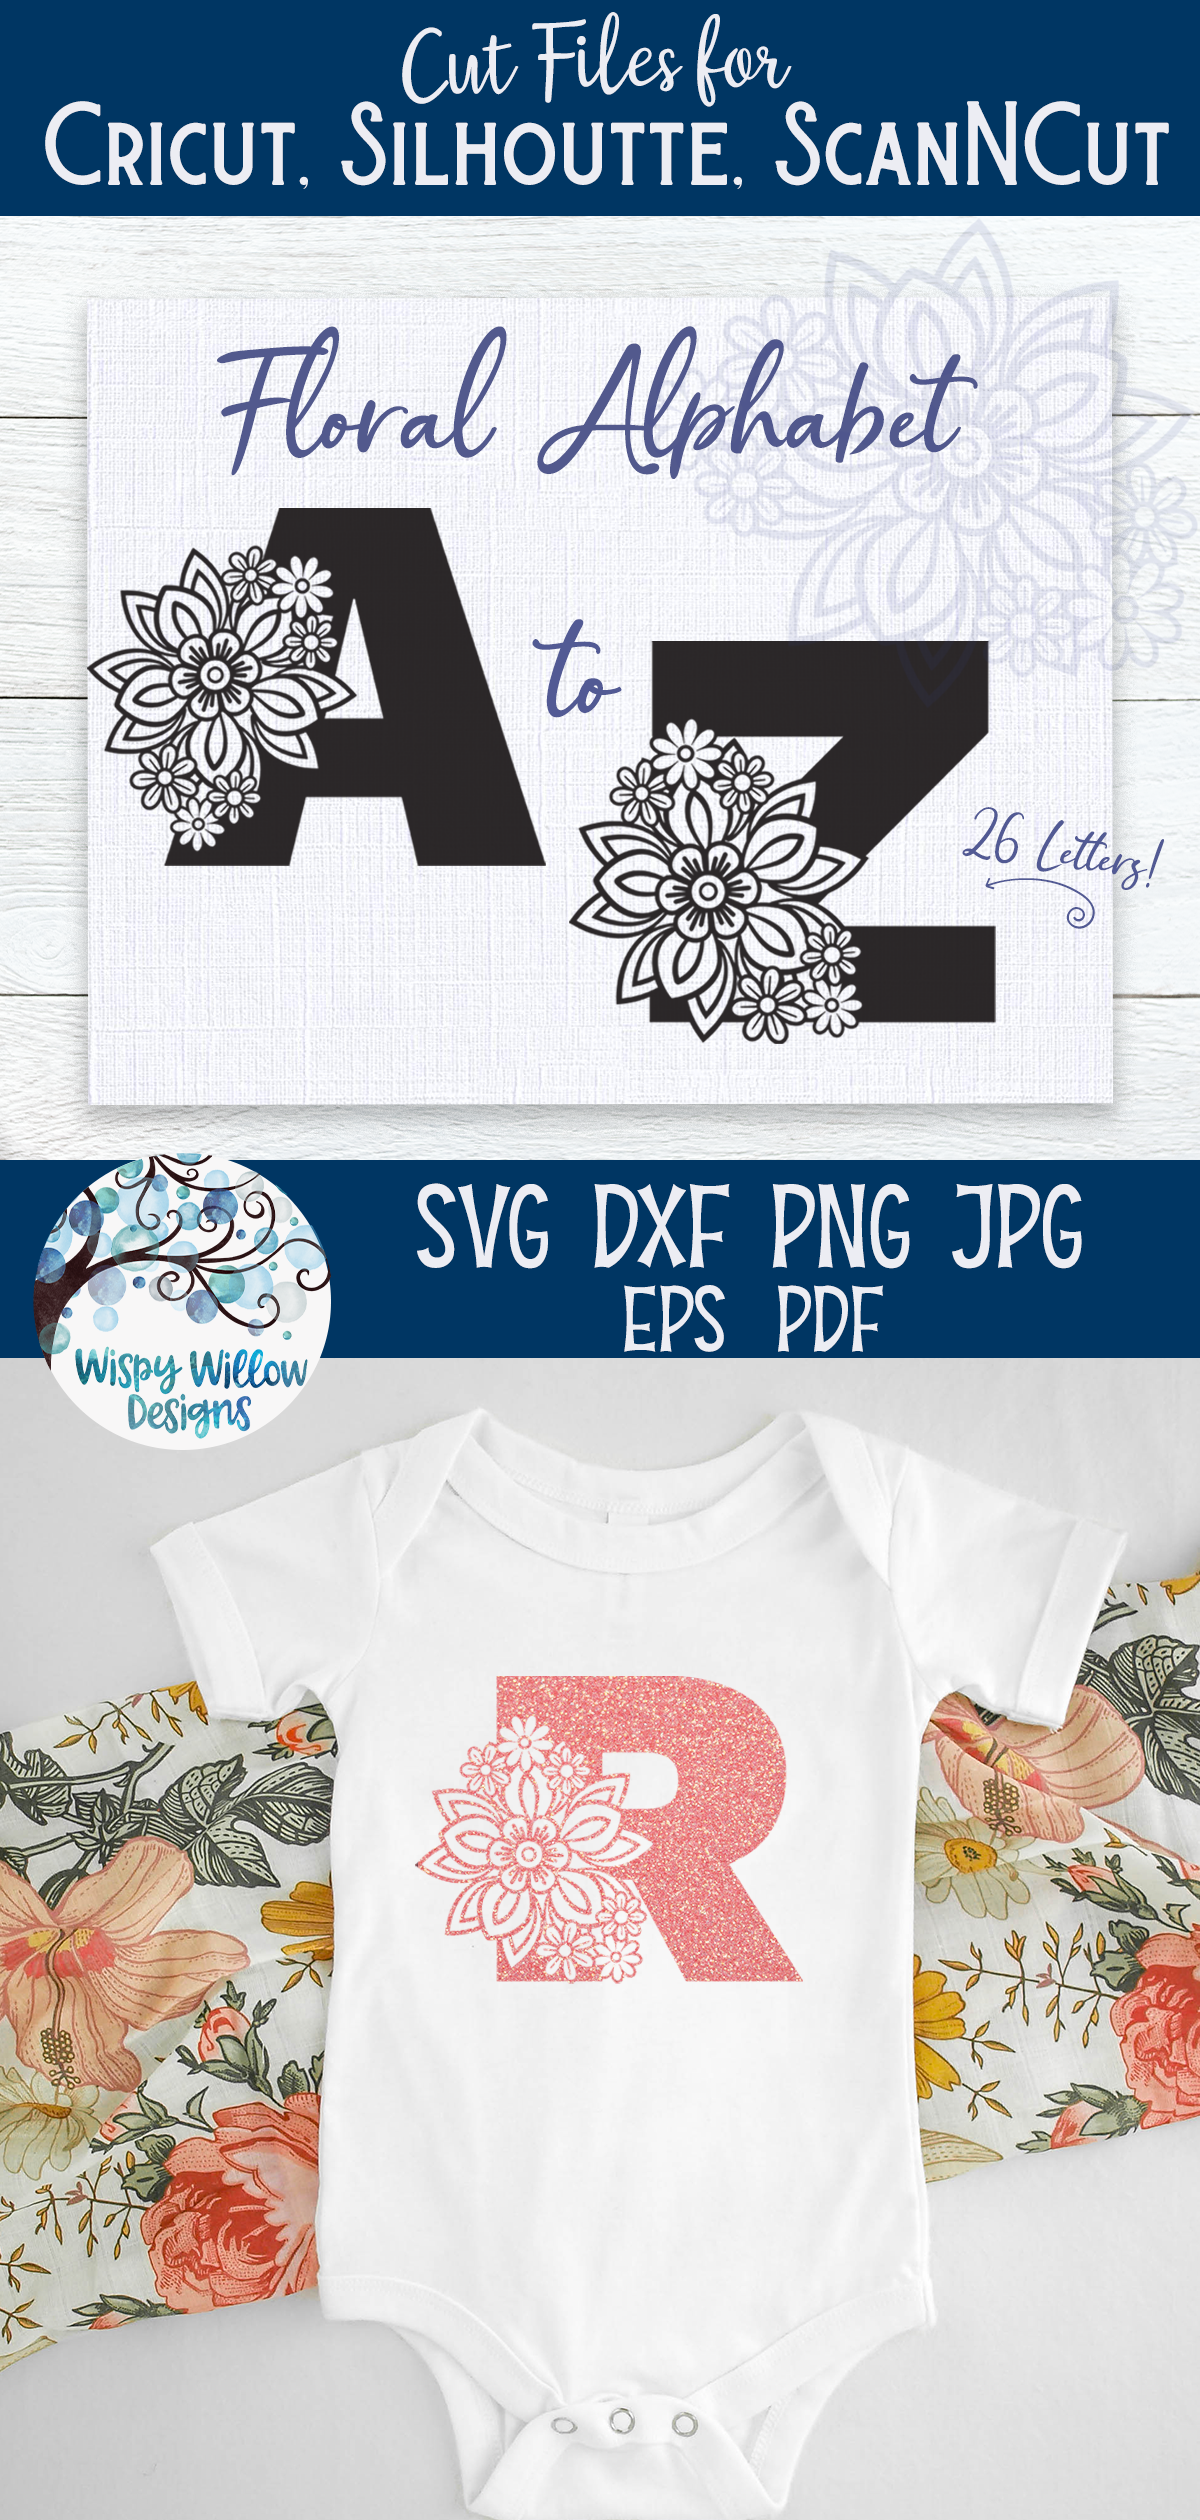 Floral Alphabet SVG Bundle | A to Z Floral Letters SVG example image 7